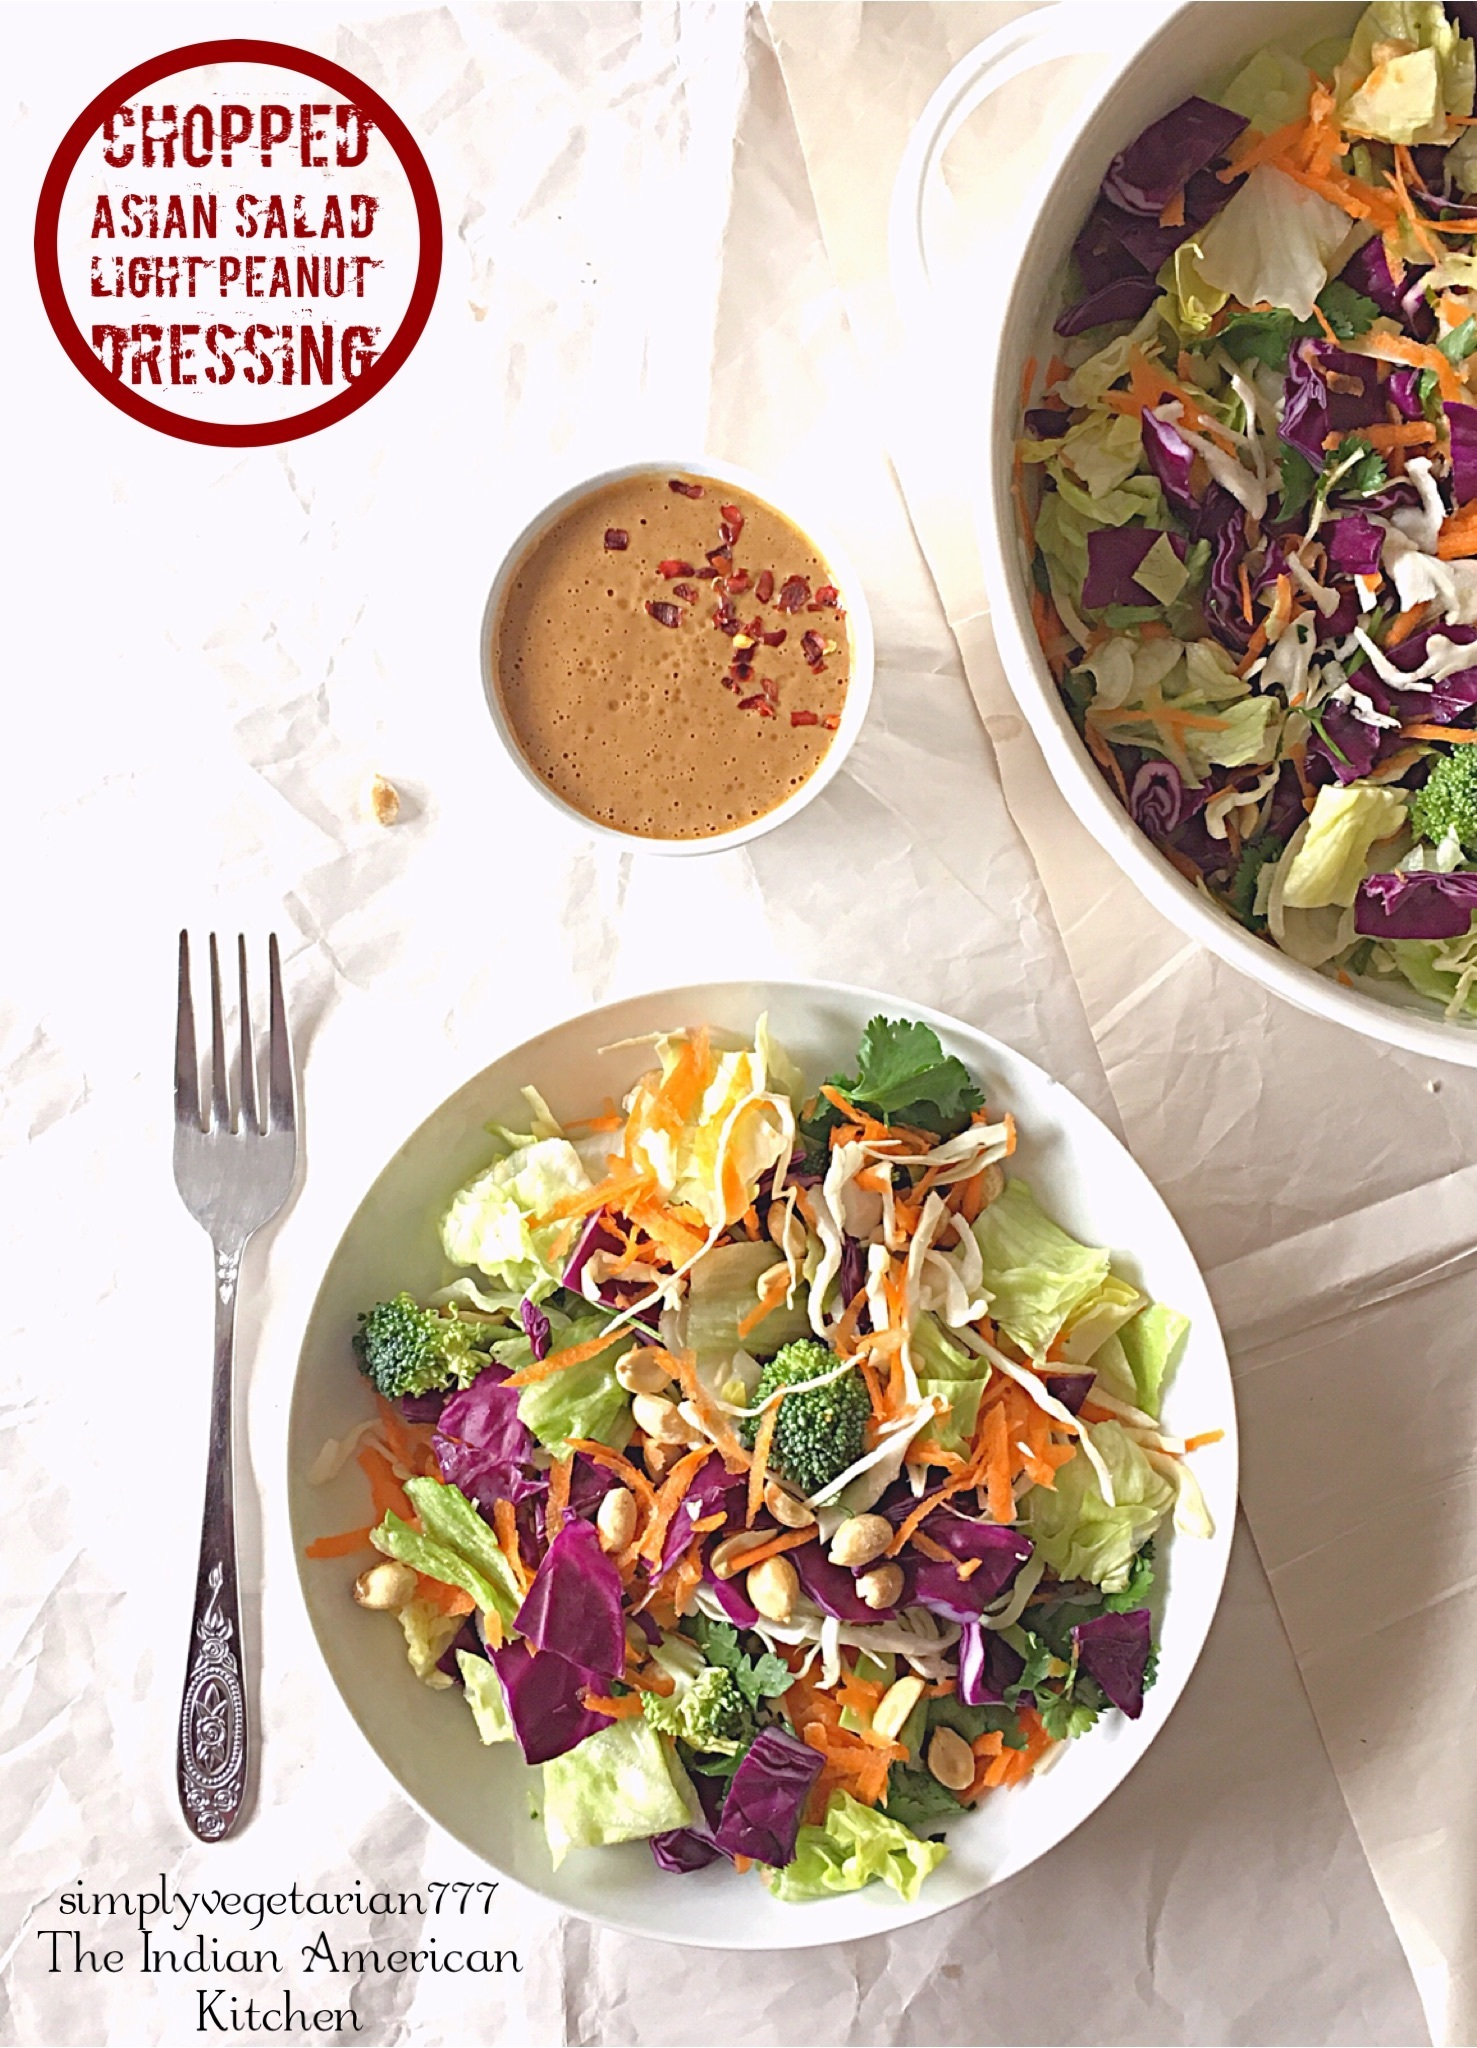 Chopped Asian Salad with Light Peanut Dressing